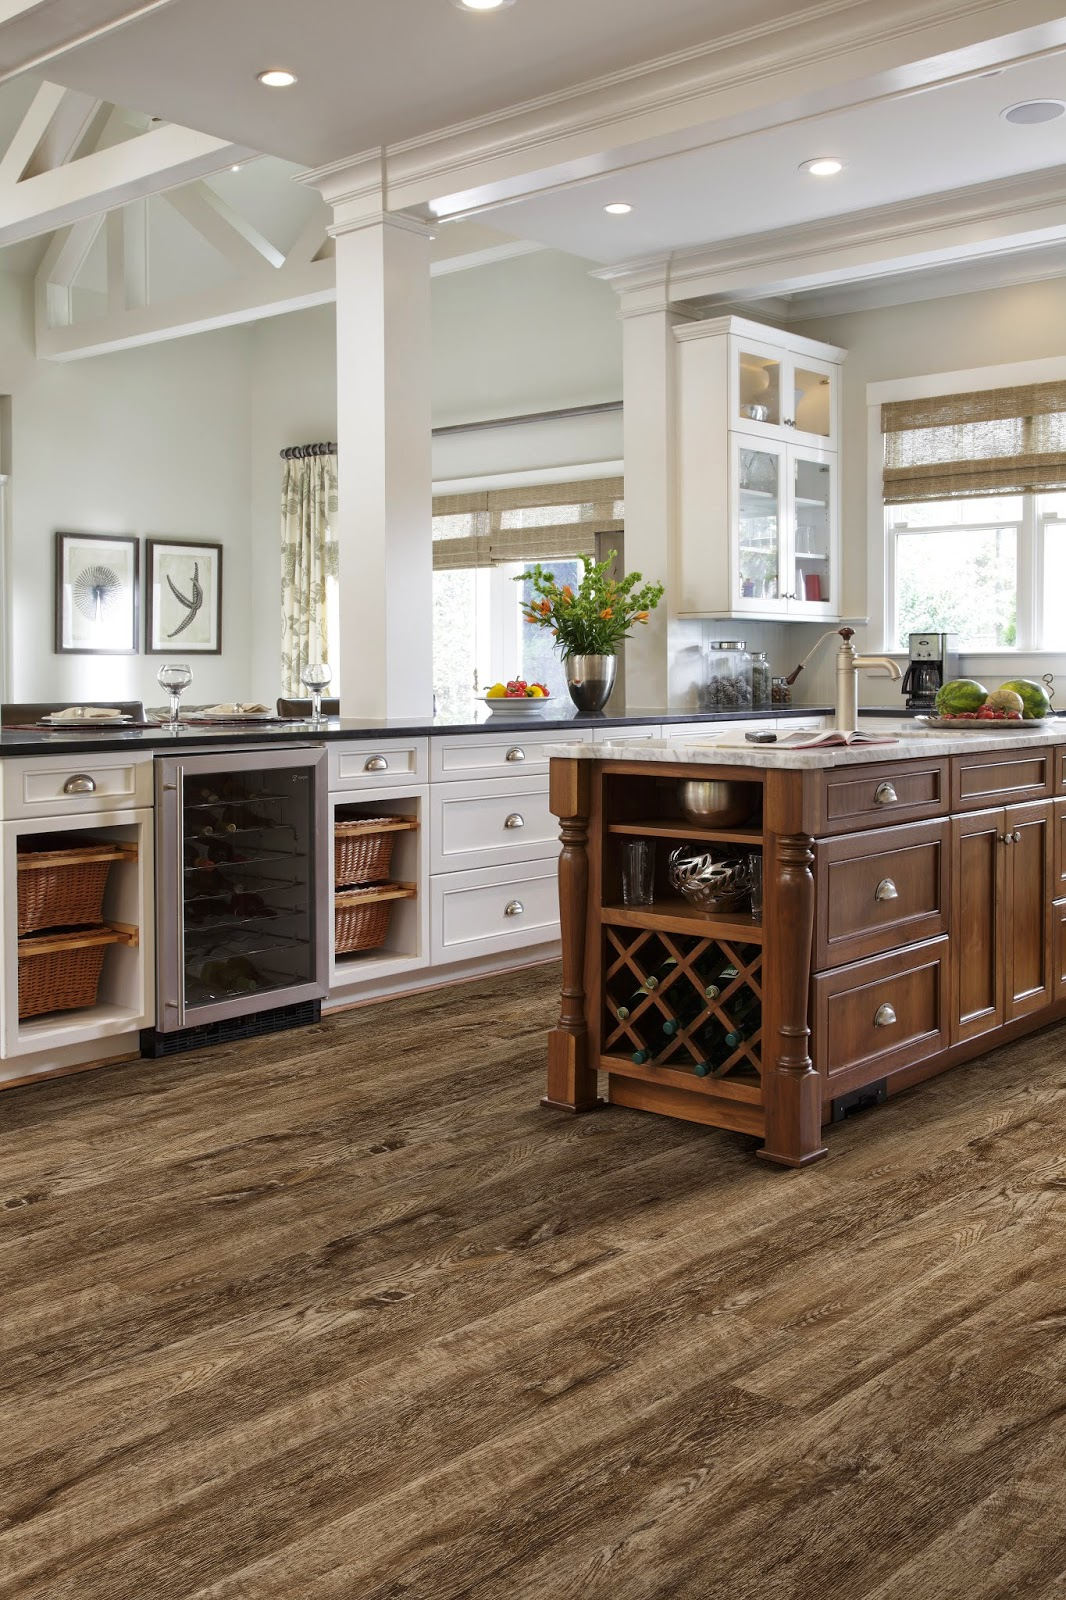 Vinyl Plank Flooring Kitchen Introducing Brand New Invincible H20 Flooring Mercer Carpet One